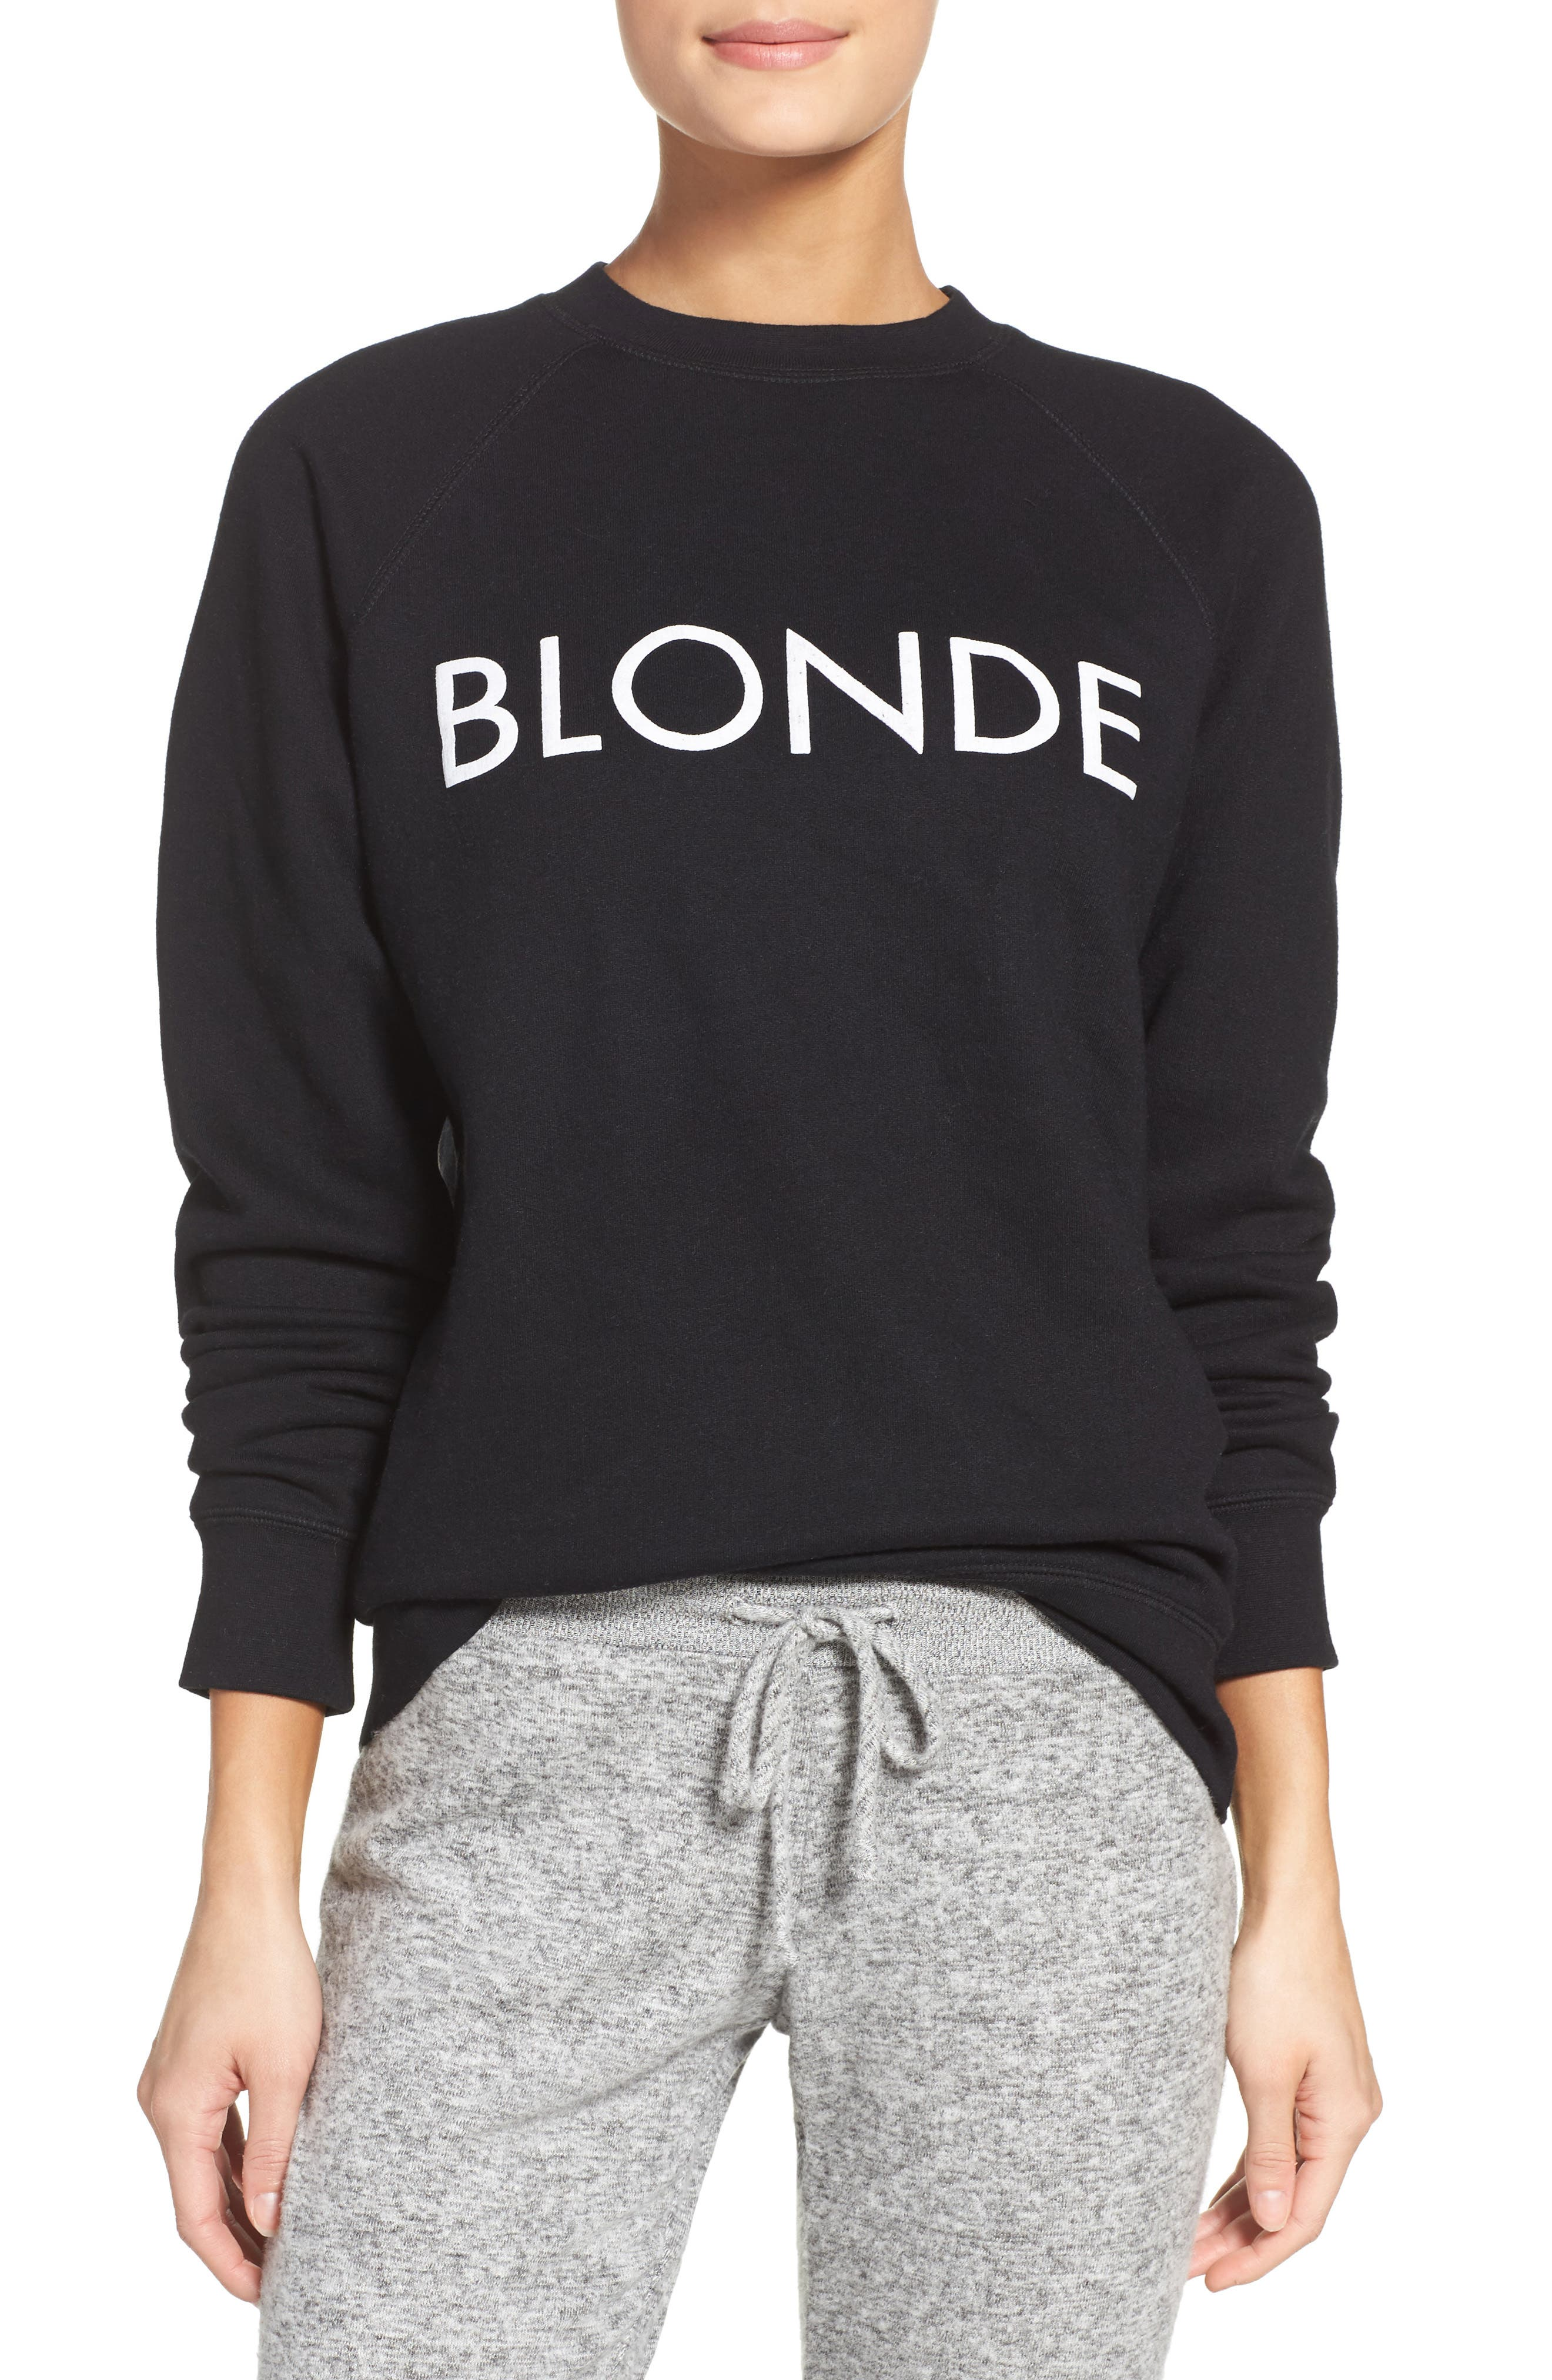 Main Image - BRUNETTE the Label Blonde Crewneck Sweatshirt